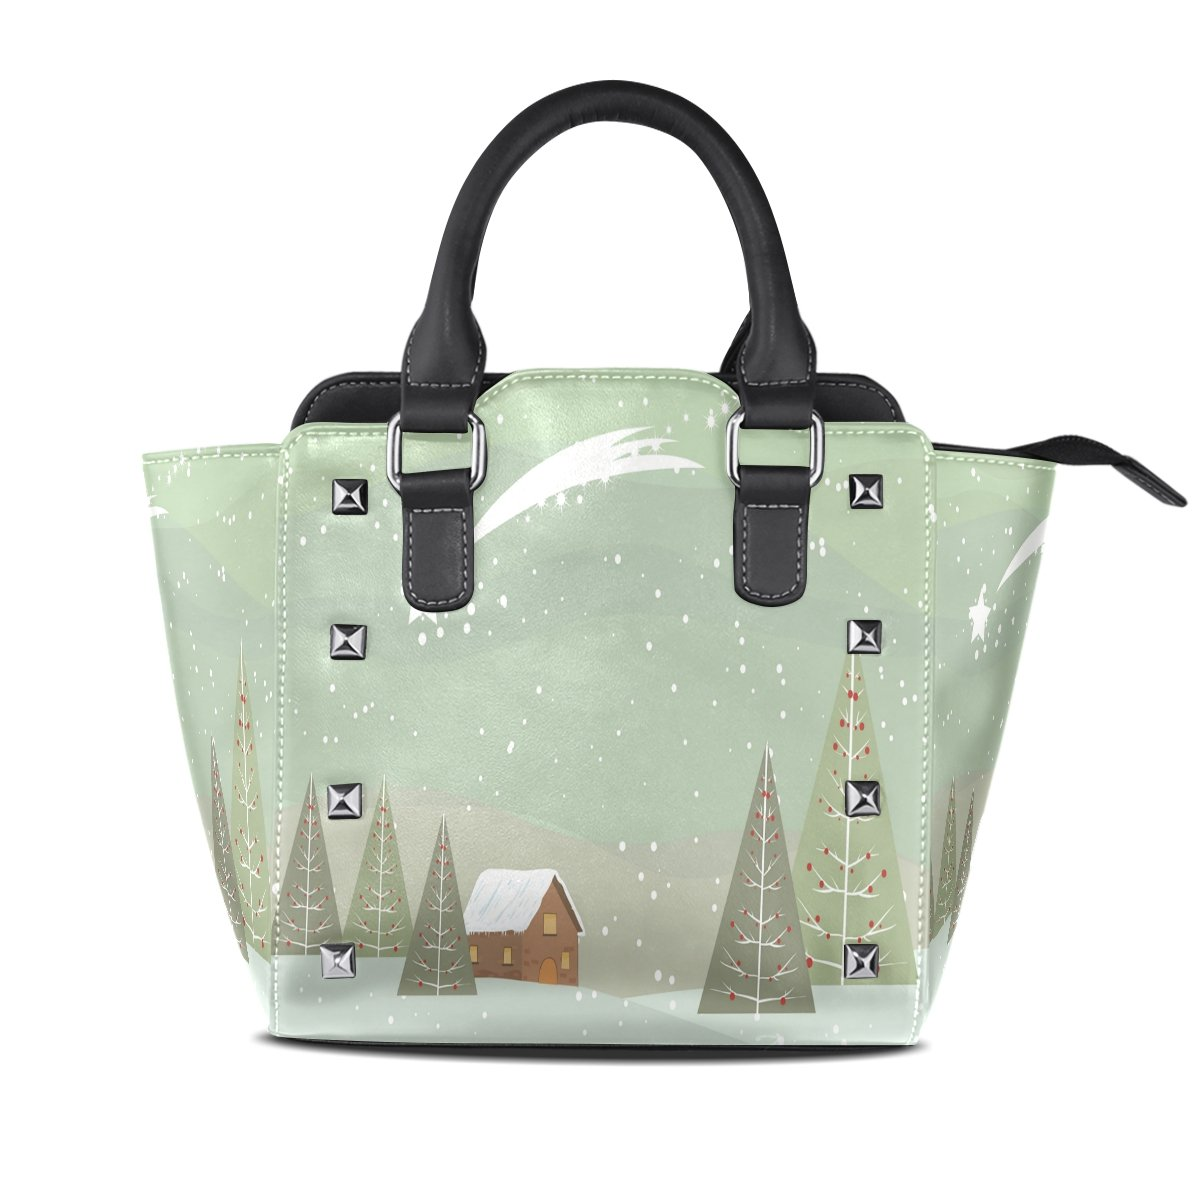 Ladies Tote Bags Christmas Tree House Womens Genuine Leather Totes Hangbags Shoulder Bags